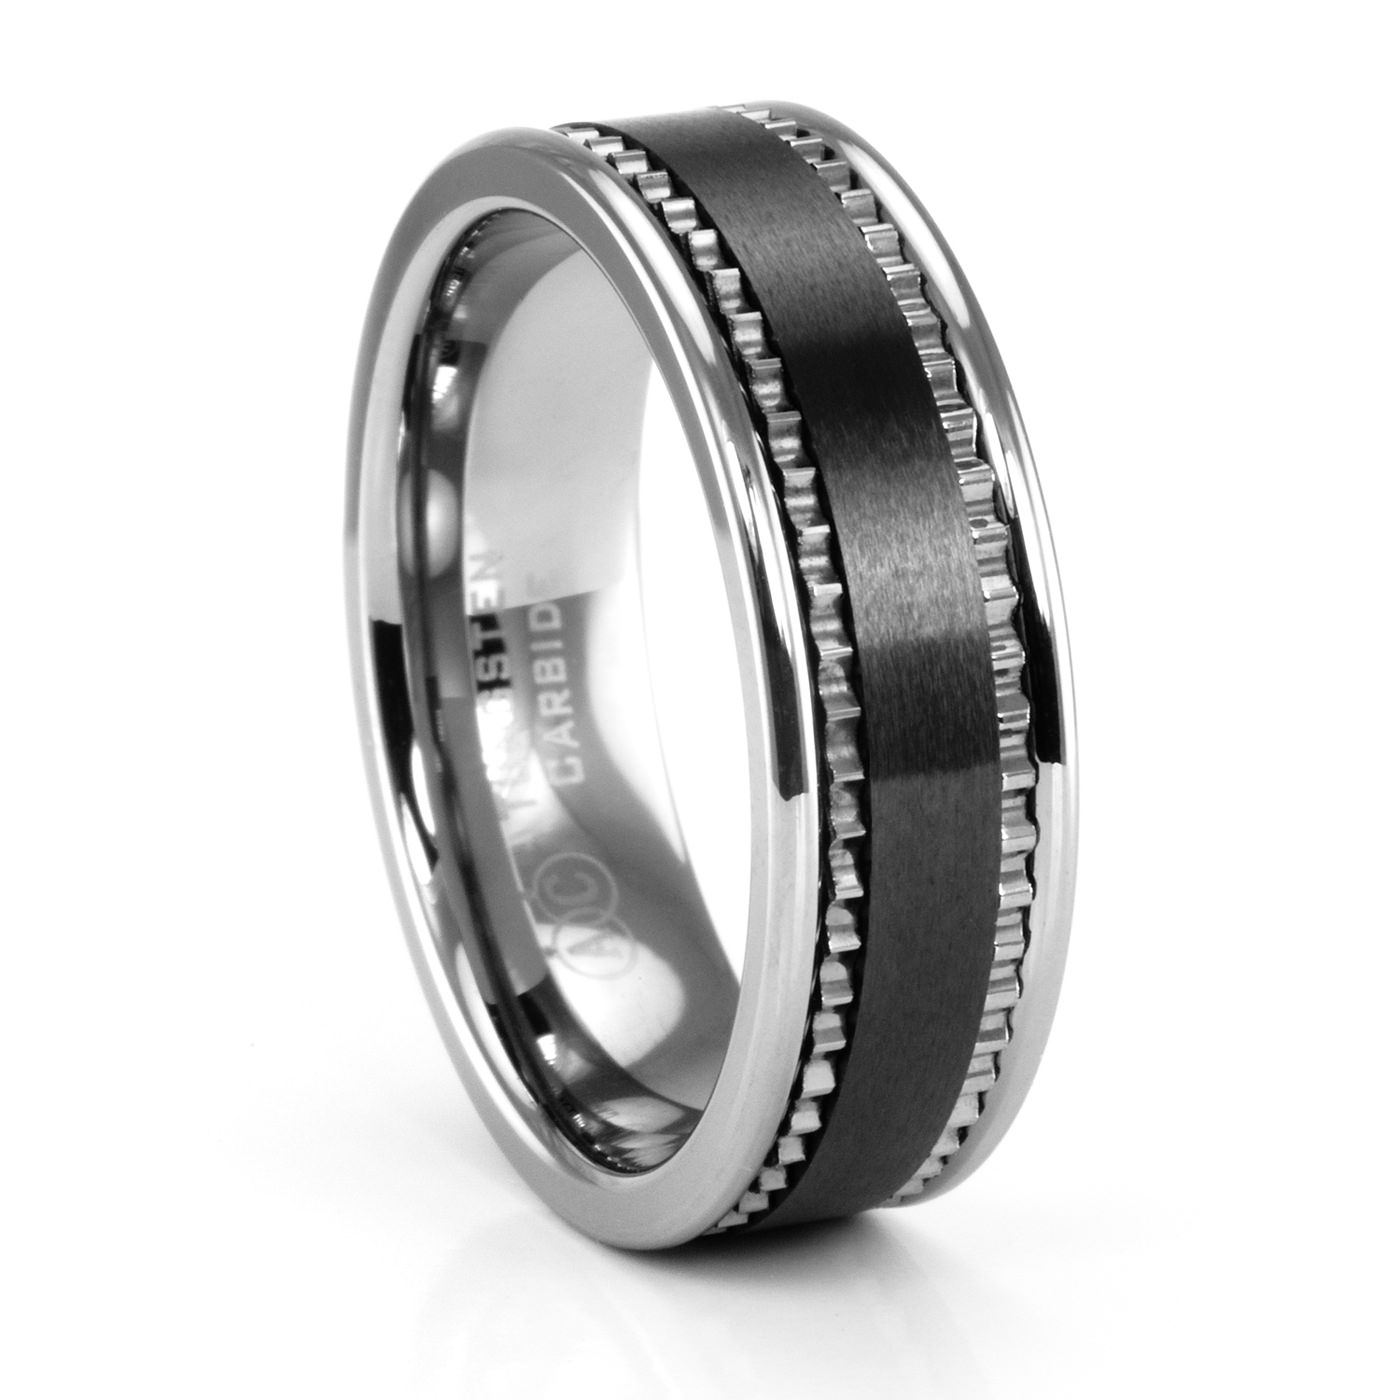 rings ebony band comfort dsc ring wedding antler wood inlay products deer ceramic black fit